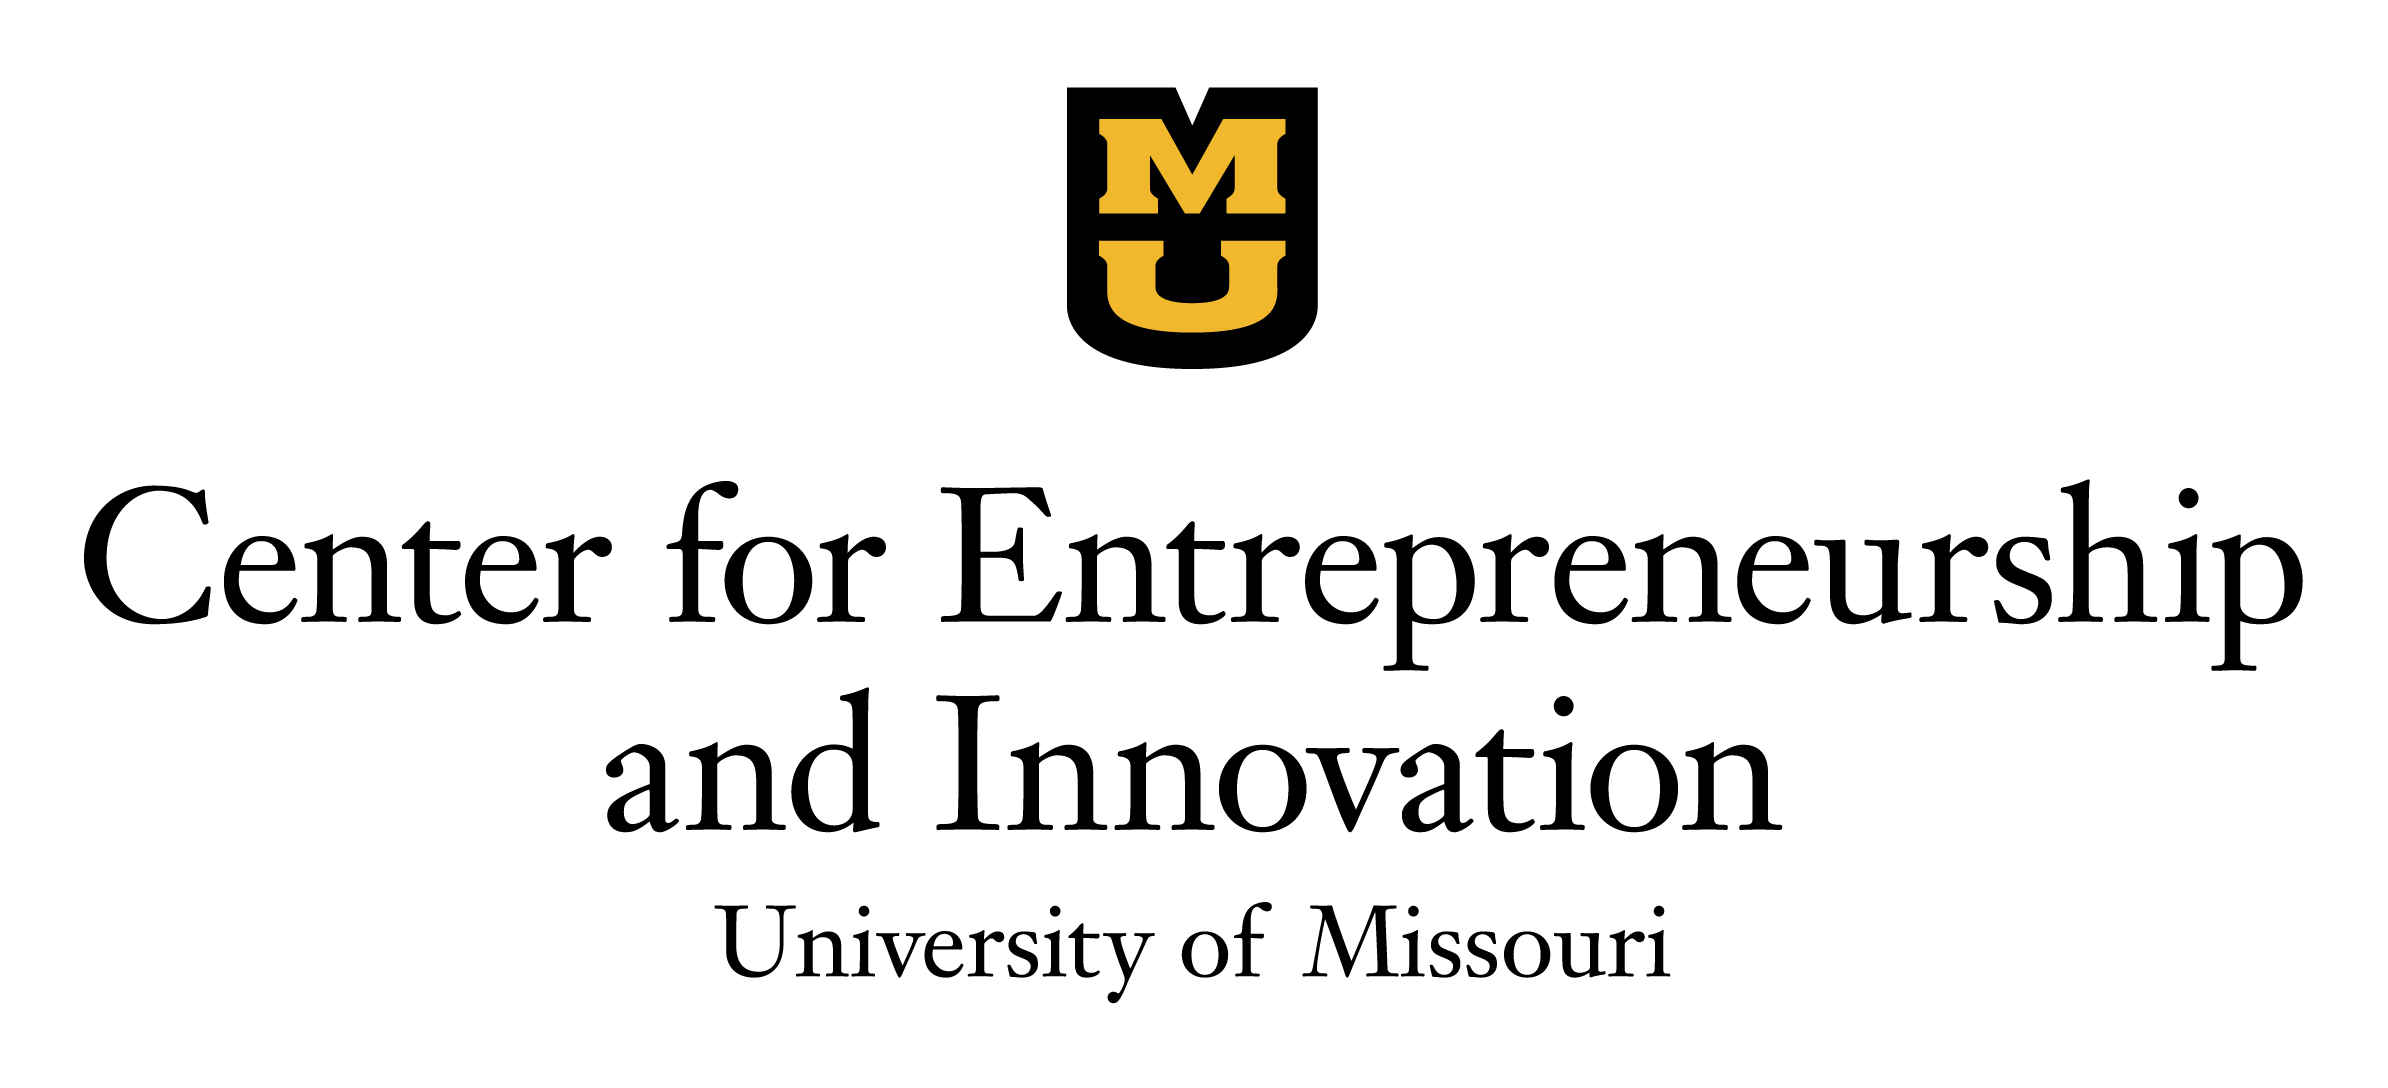 Center for Entrepreneurship and Innovation-University of Missouri Logo